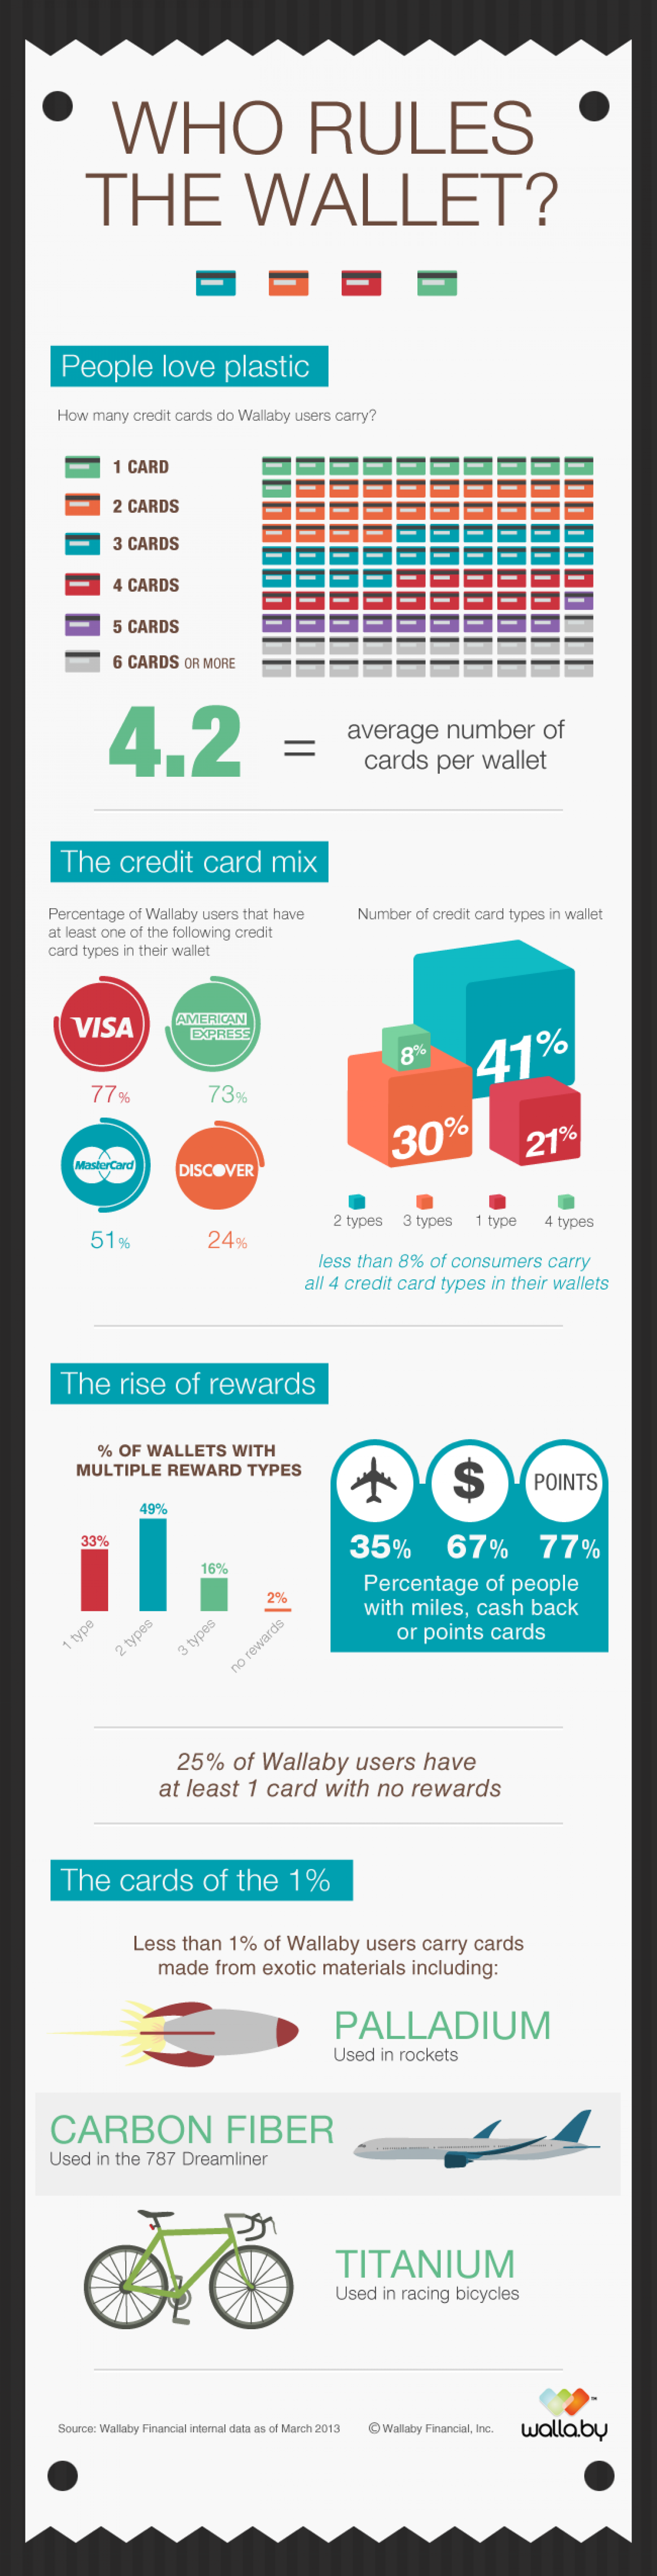 Who Rules the Wallet? Infographic